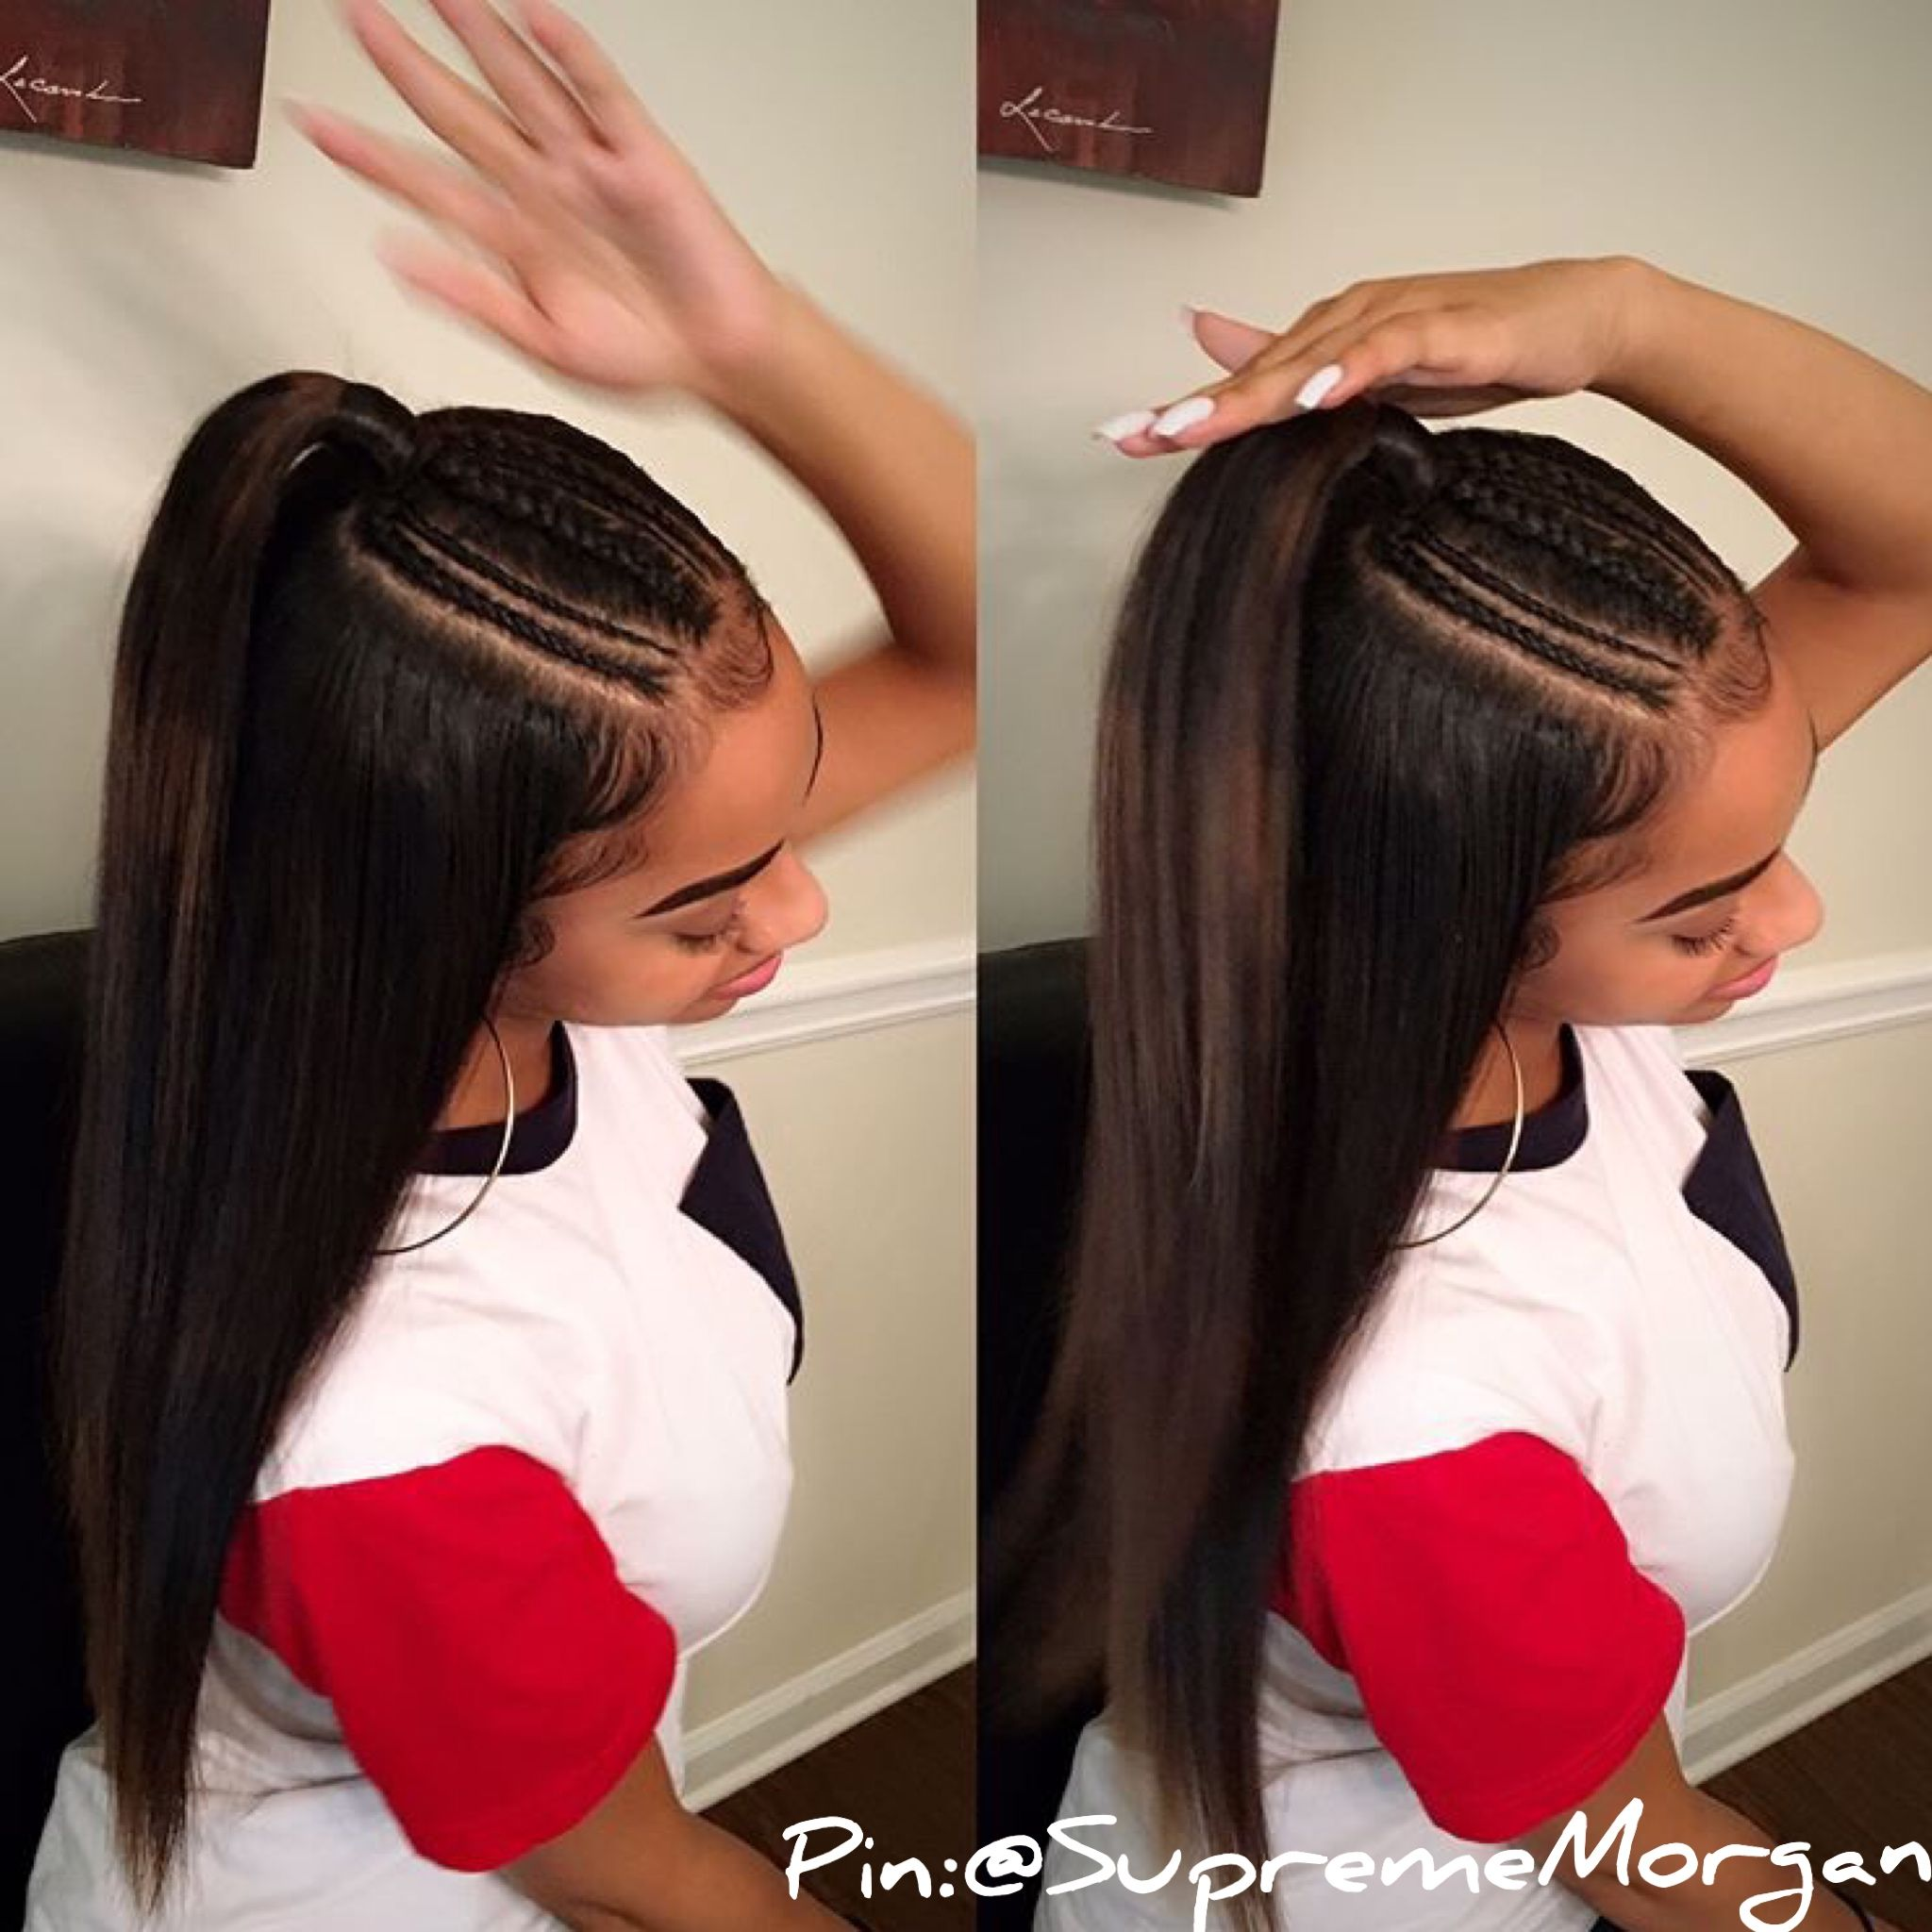 Erianasavagee pretty hair pinterest hair style black girls